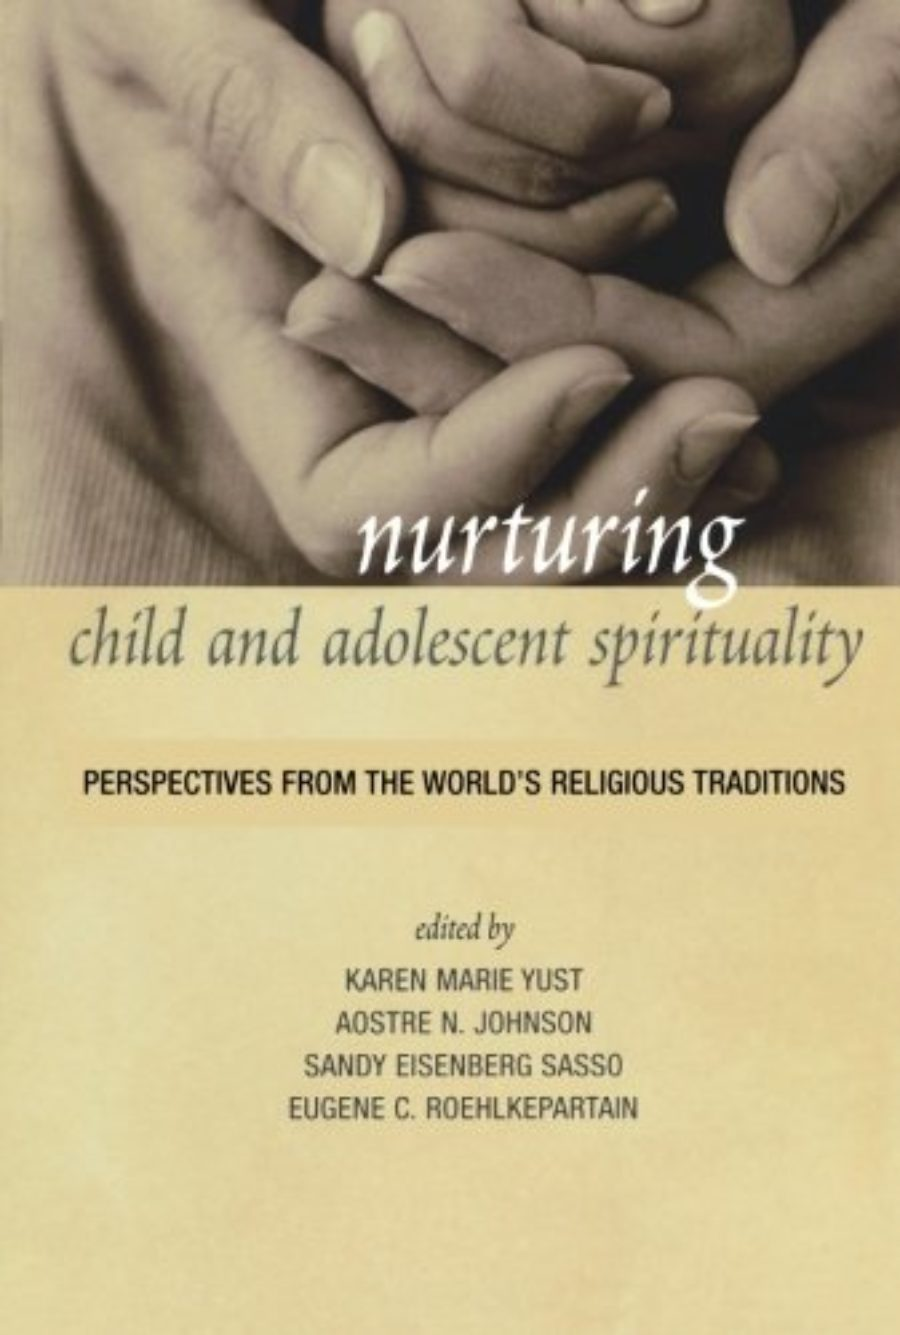 Cover of Nurturing Child and Adolescent Spirituality: Perspectives from the World's Religious Traditions